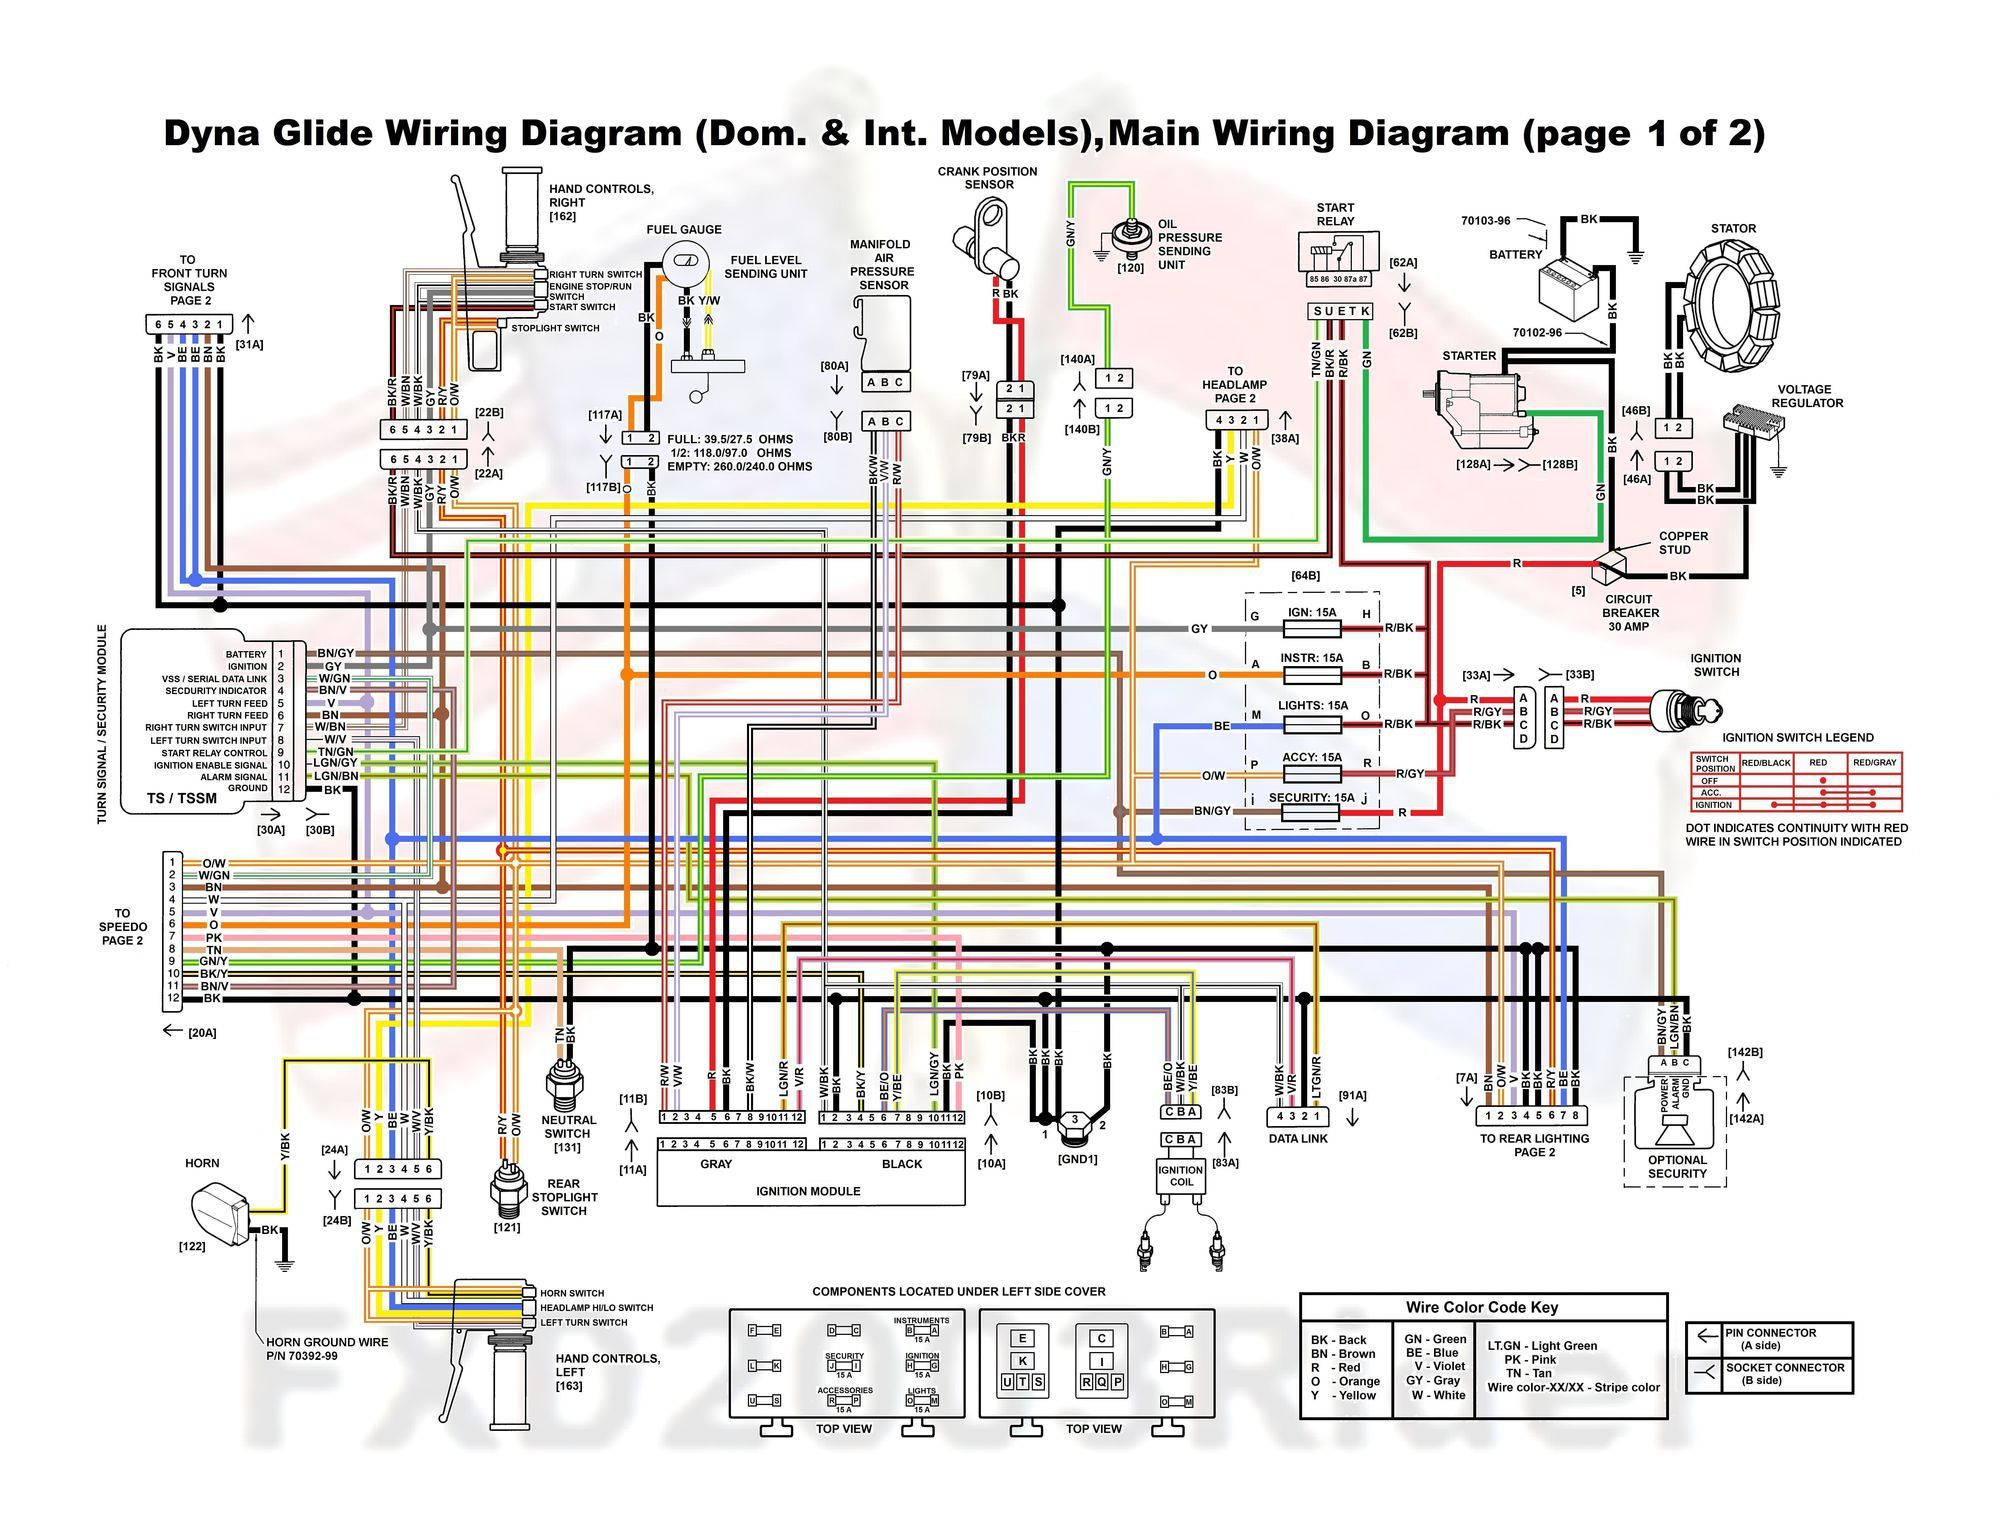 Harley Davidson Police Wiring Diagram And Motorcycle Wiring Harley Davidson Ultra Classic Diagram